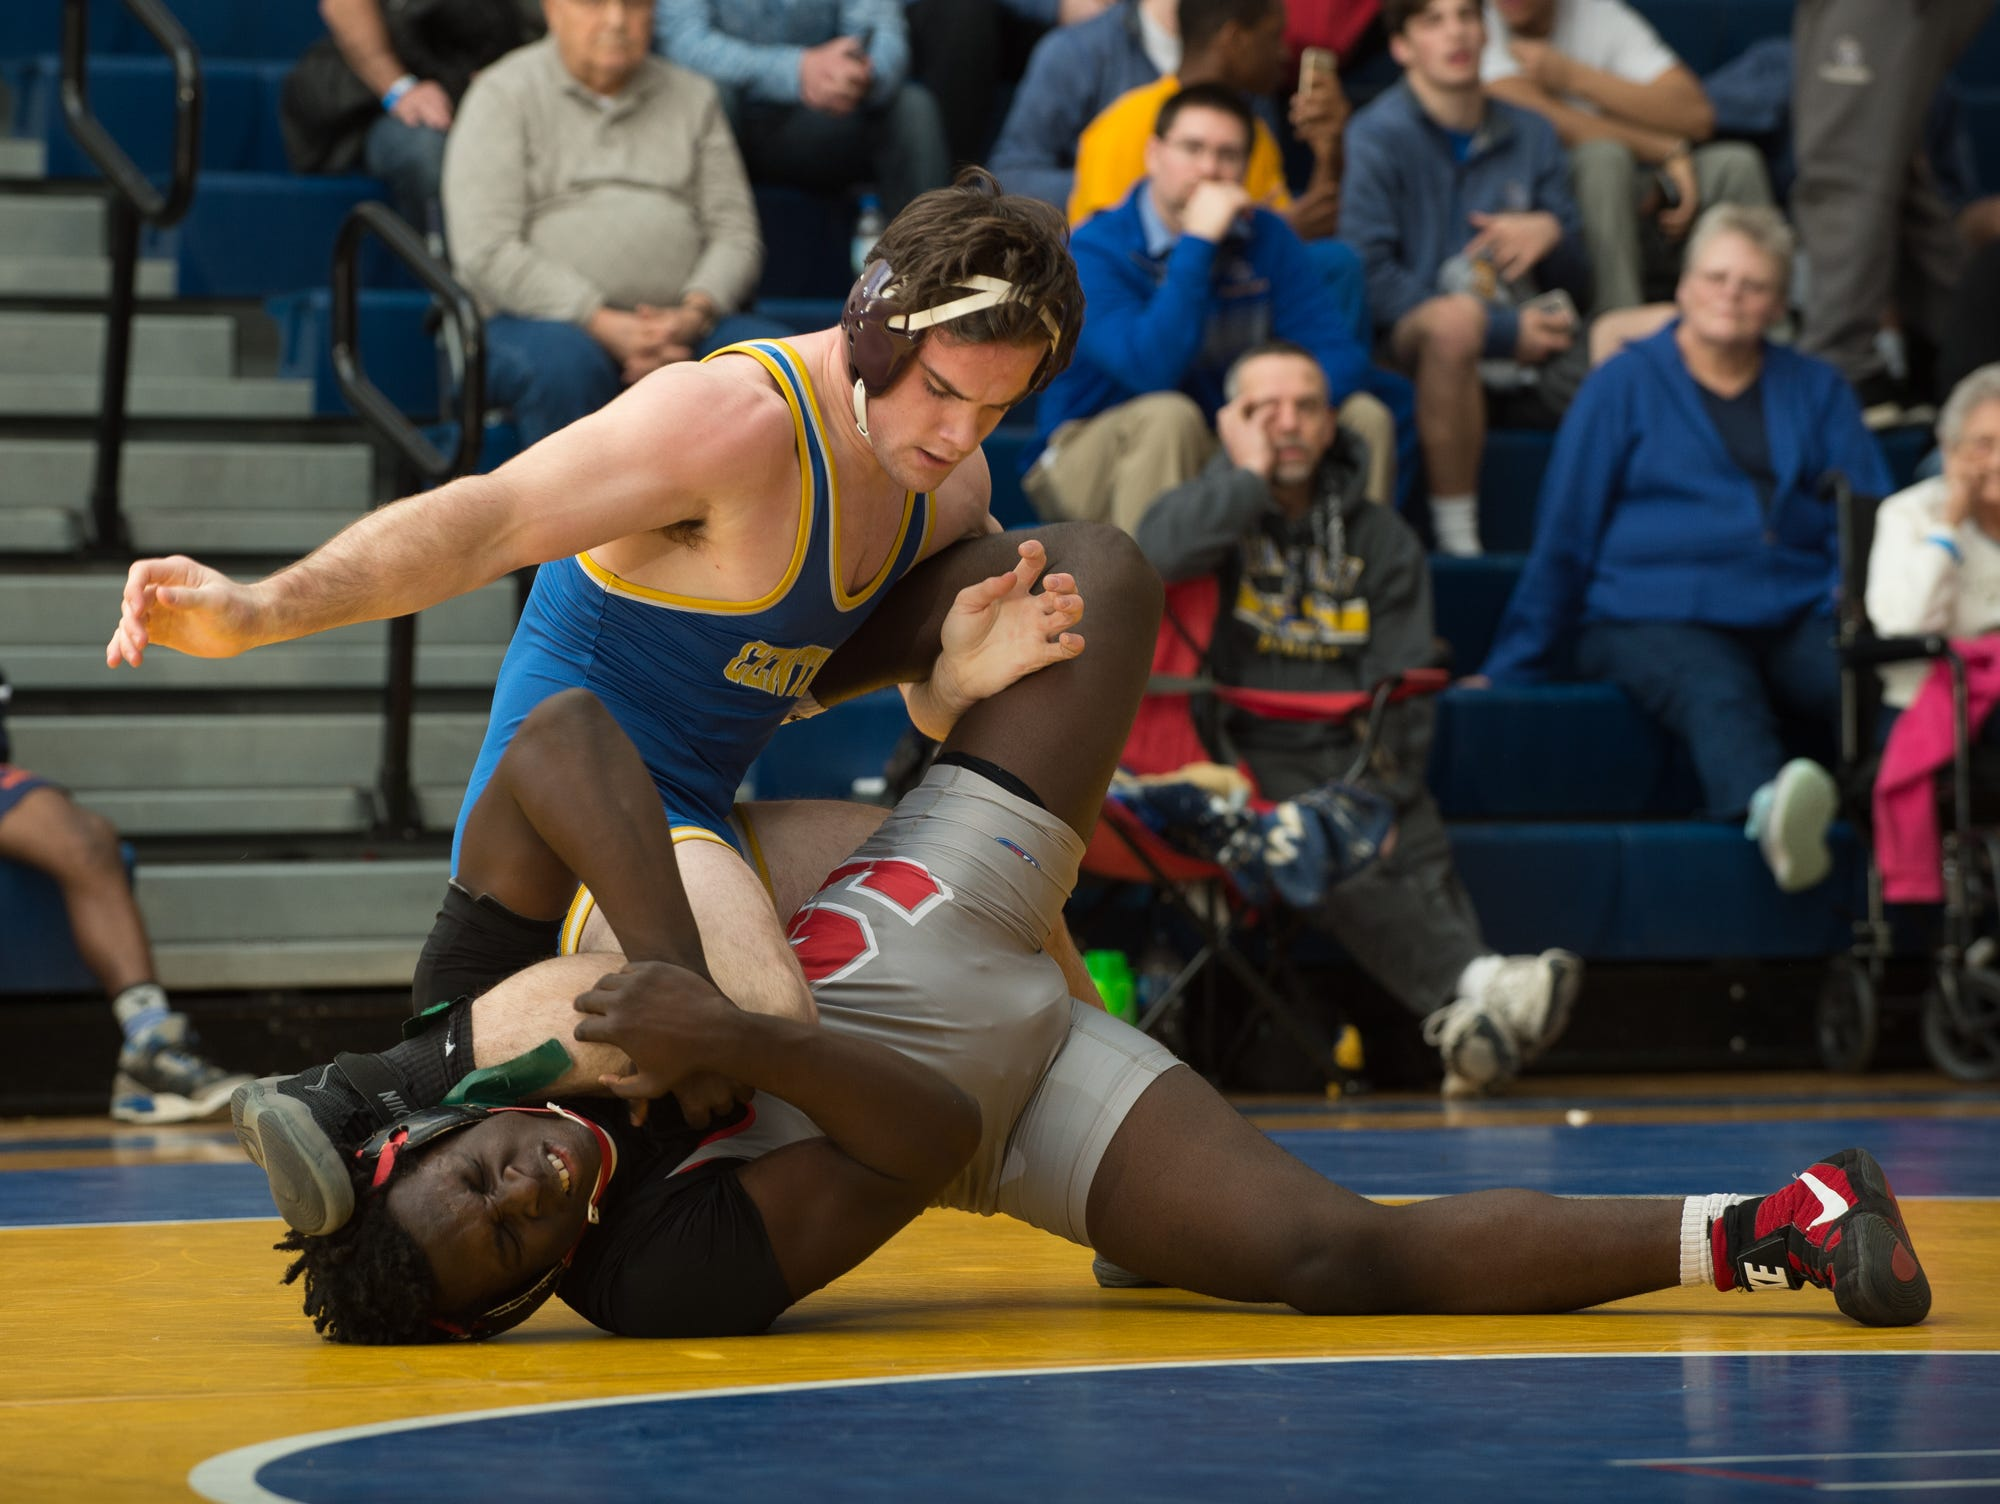 Sussex Central's Blake Chambers brings Smyrna's Larsen Wilson down to the mat in the 170 pound championship match at the Henlopen Conference wrestling tournament at Sussex Central High School.